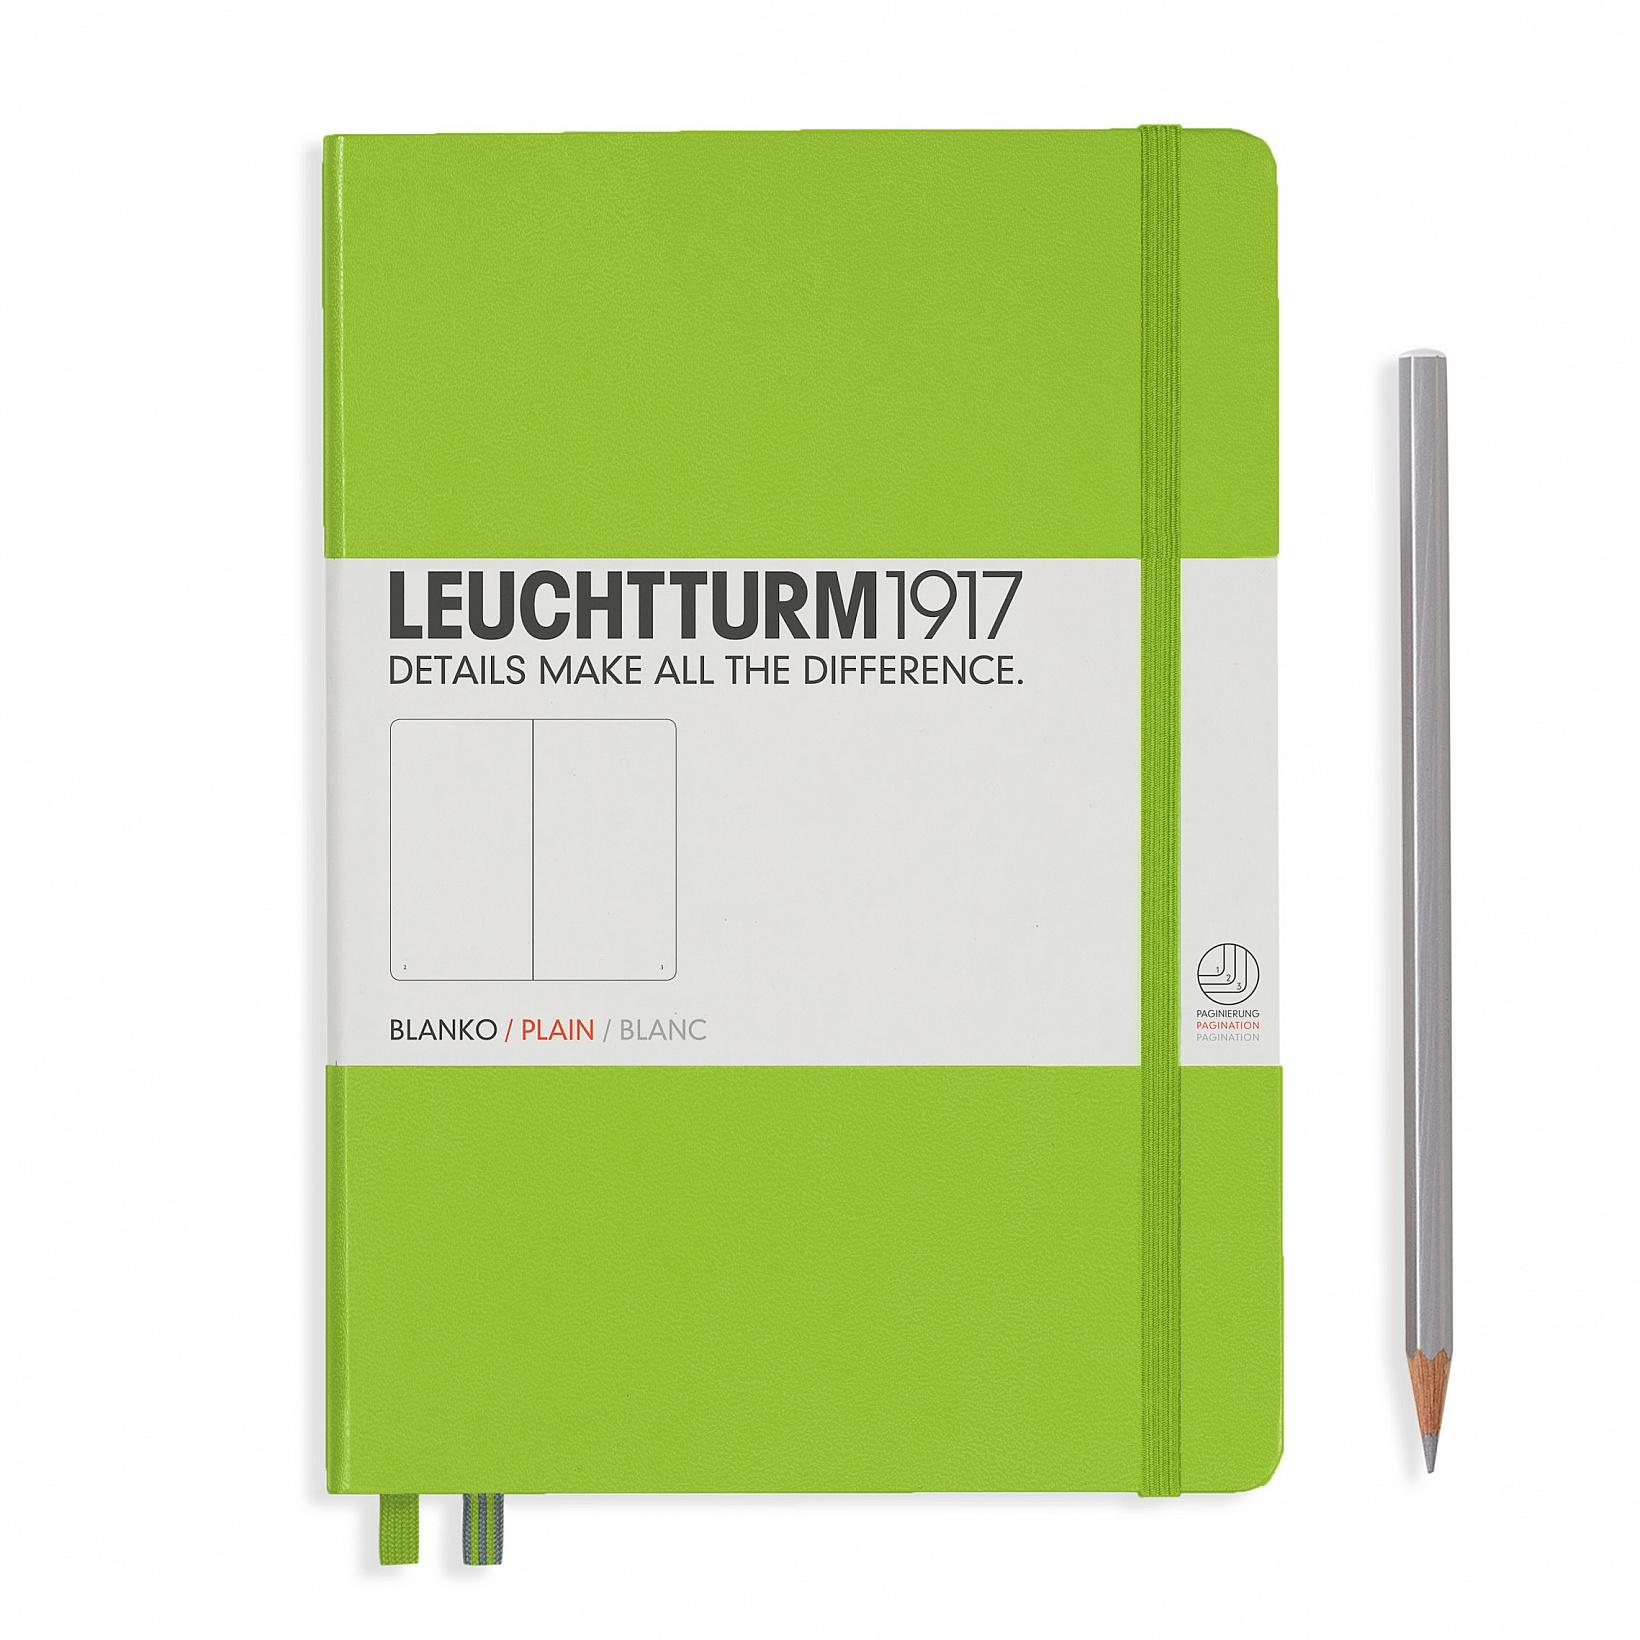 Leuchtturm 1917 A5 Medium Hardcover 249ct Lime Plain